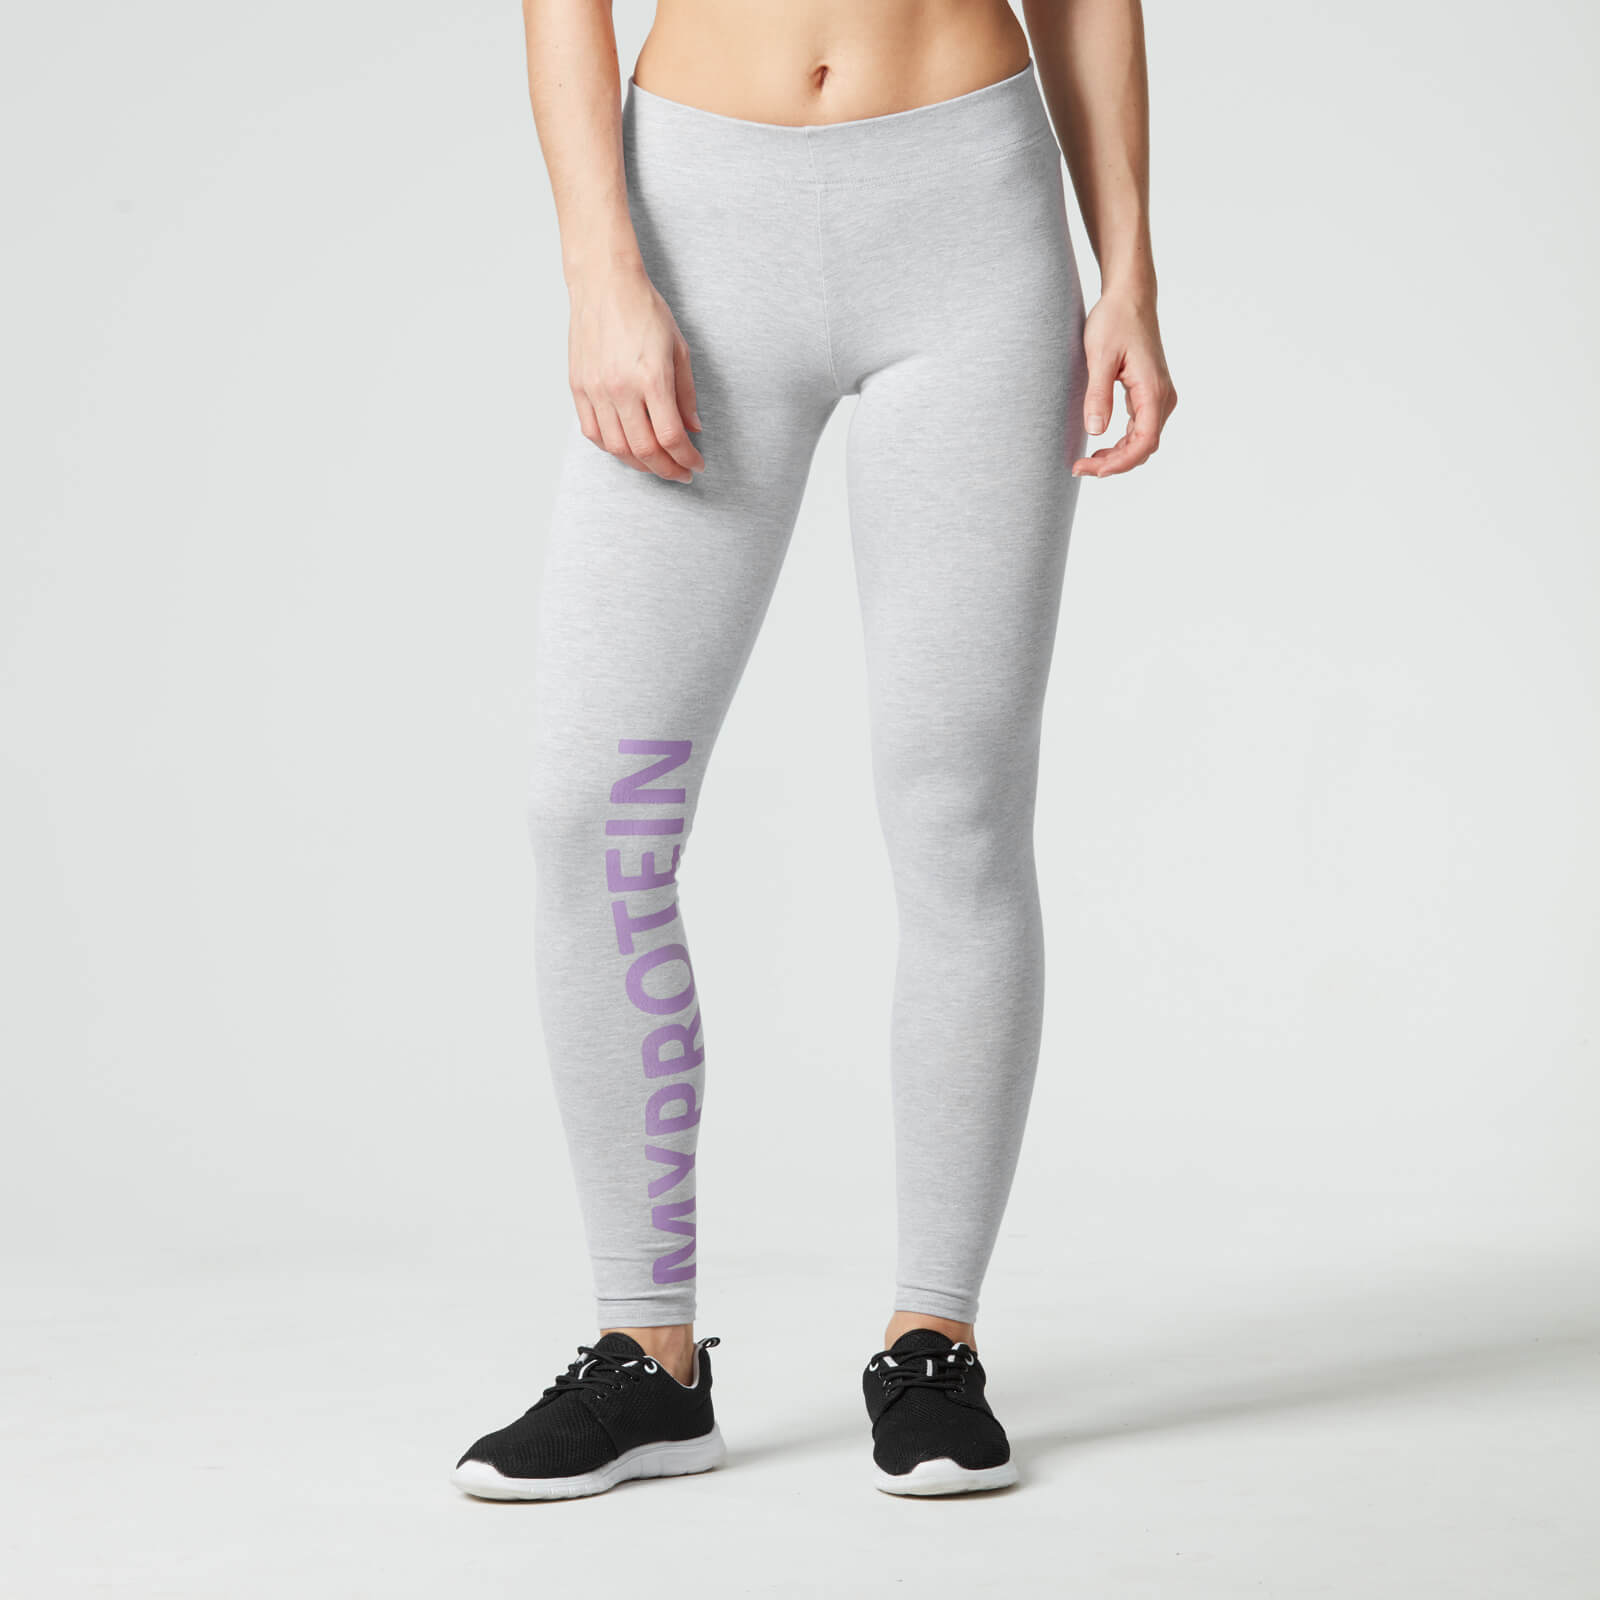 Fitness Leggings South Africa: Myprotein.co.za